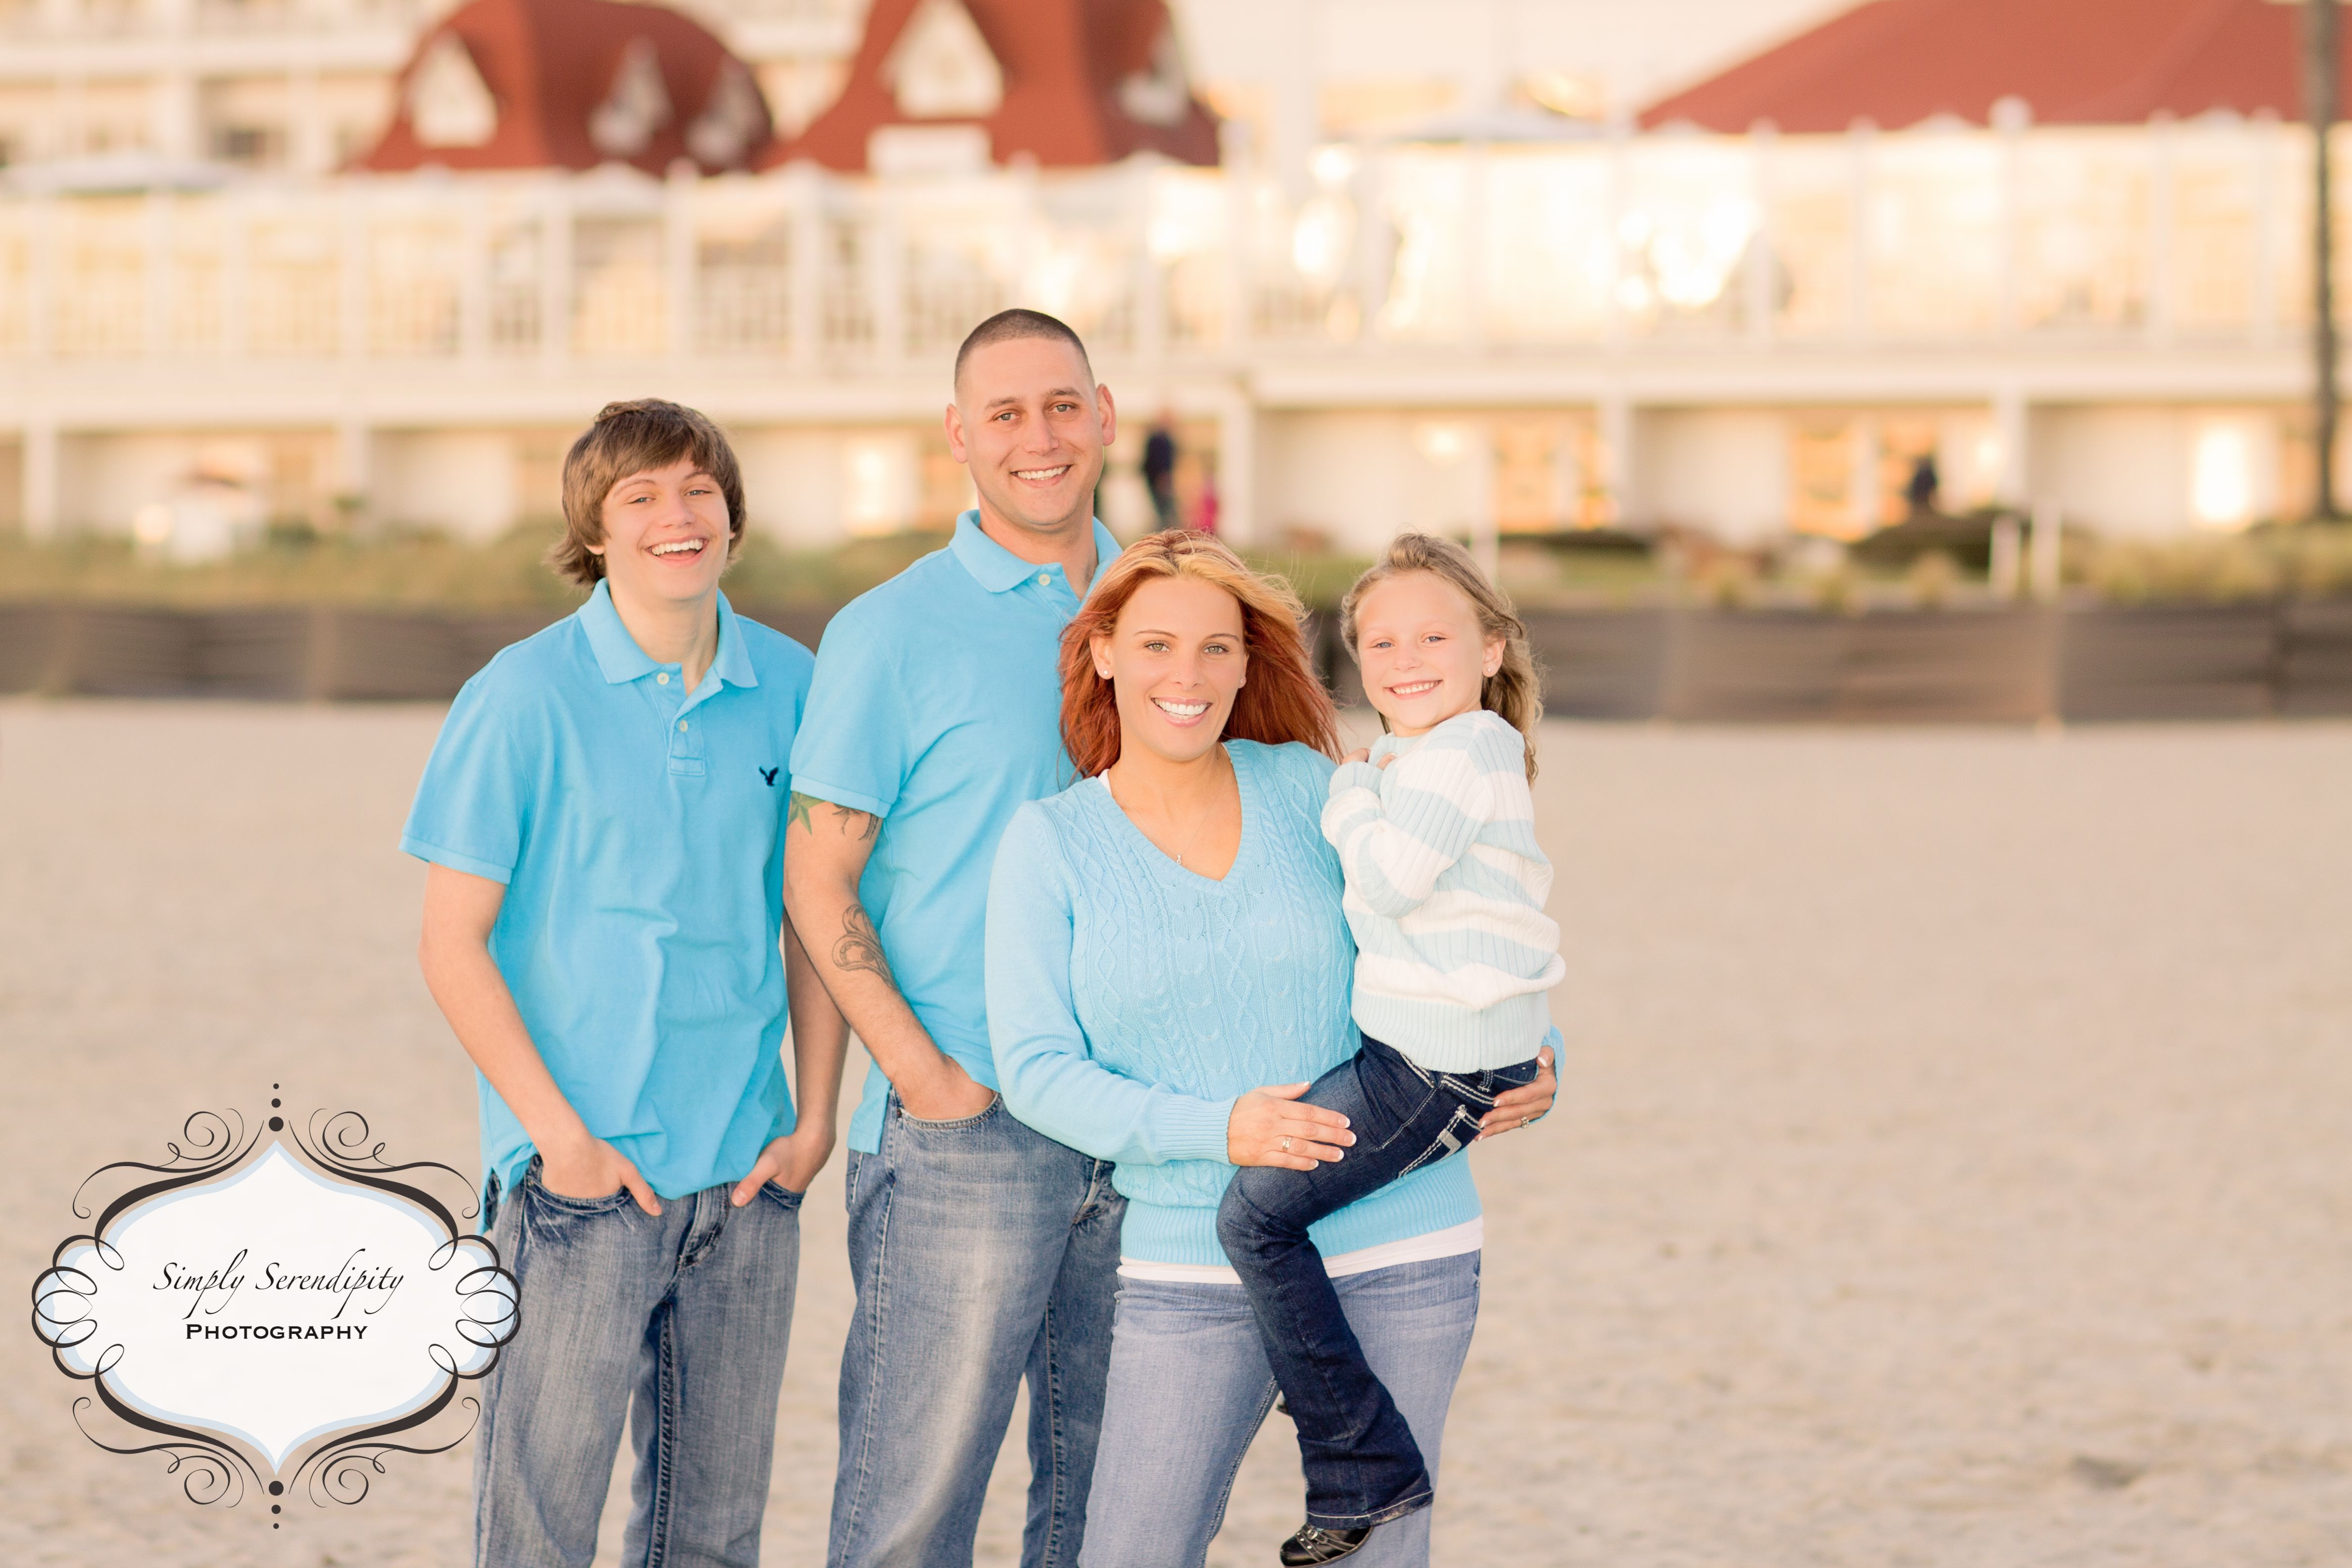 www.simply-serendipity.com - @simplyserendipityphotography